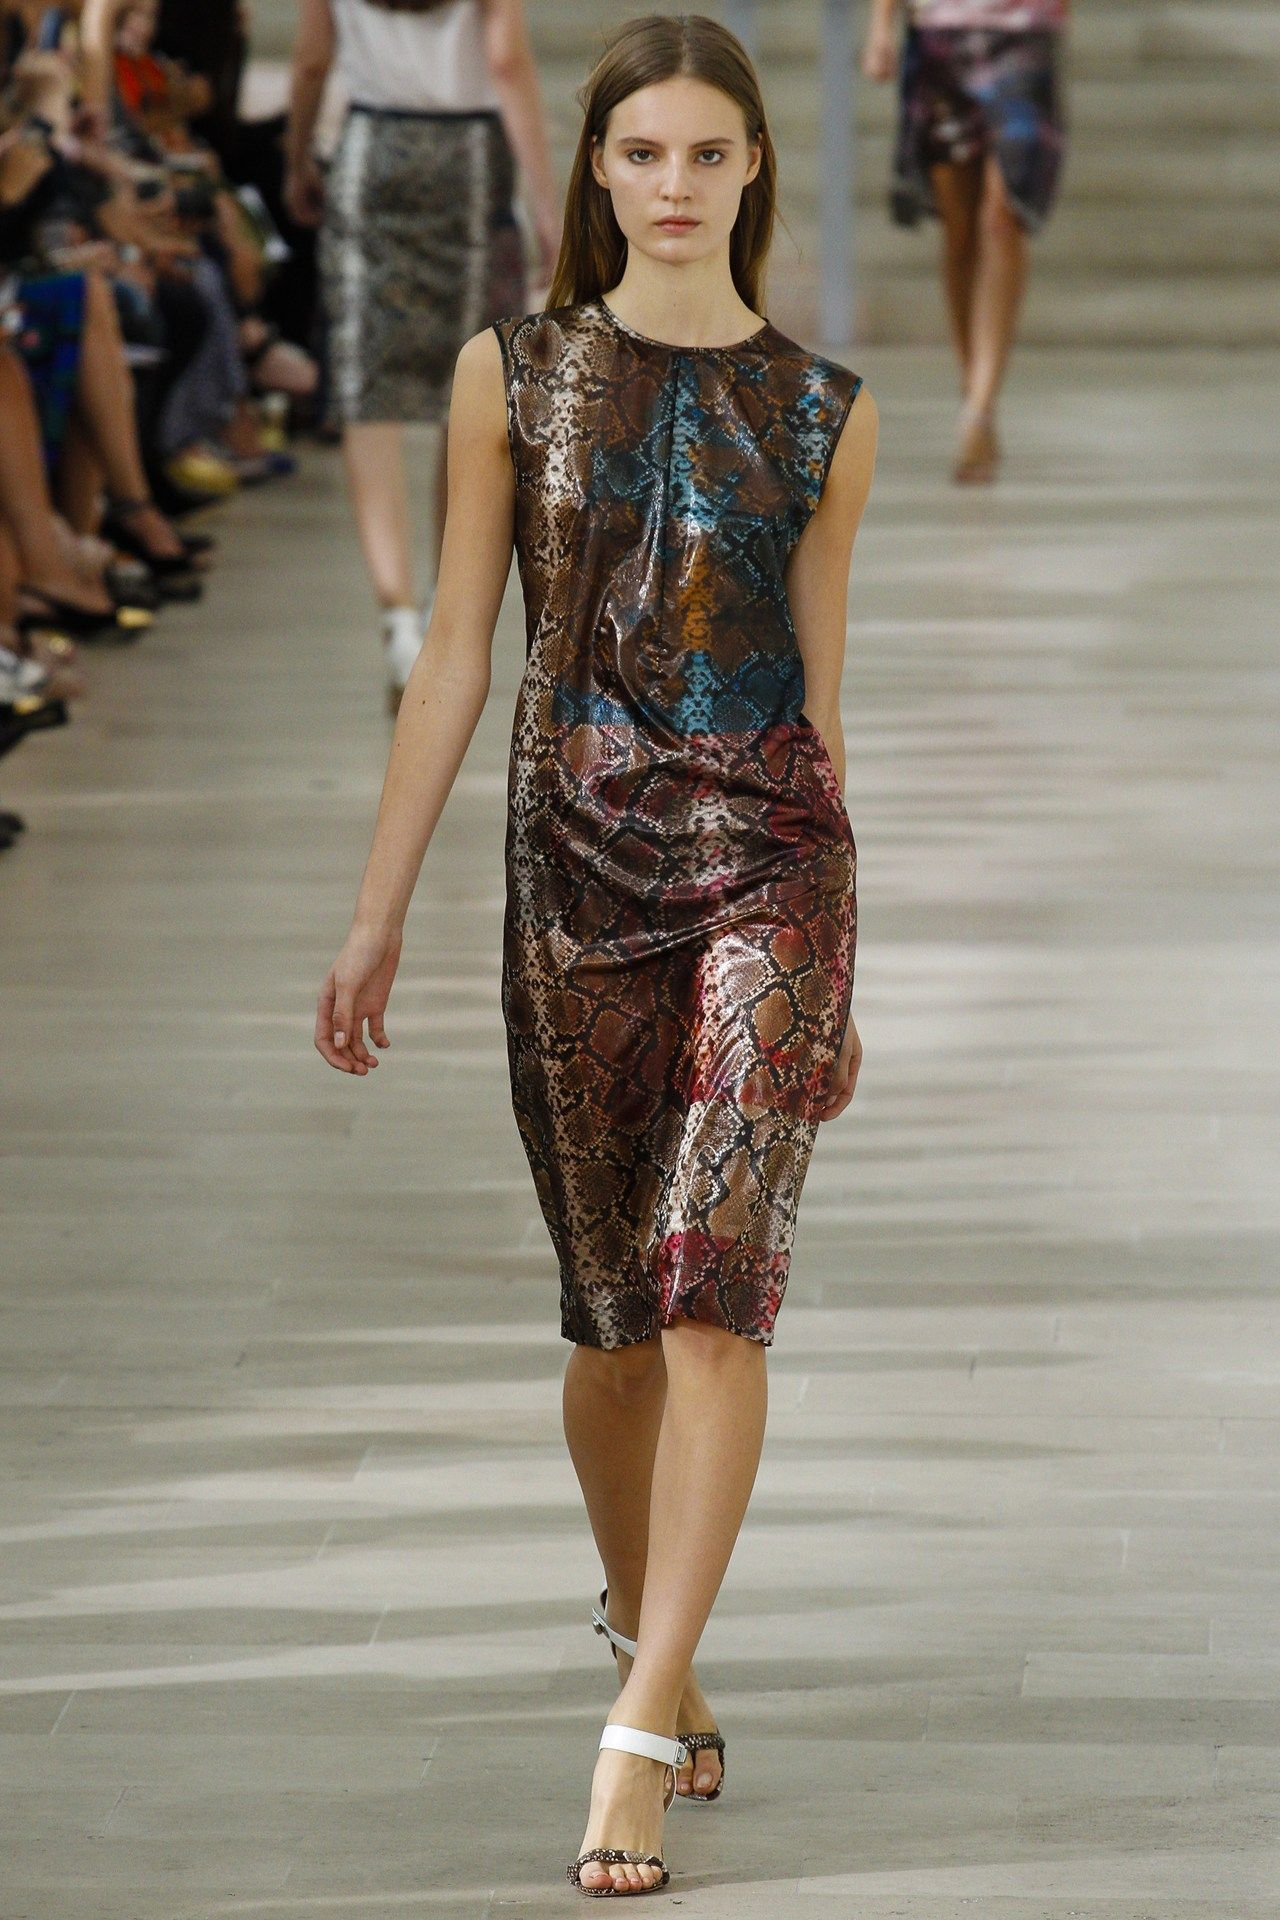 Positively swooning over this snake print number from Preen S/S 2013! #LFW